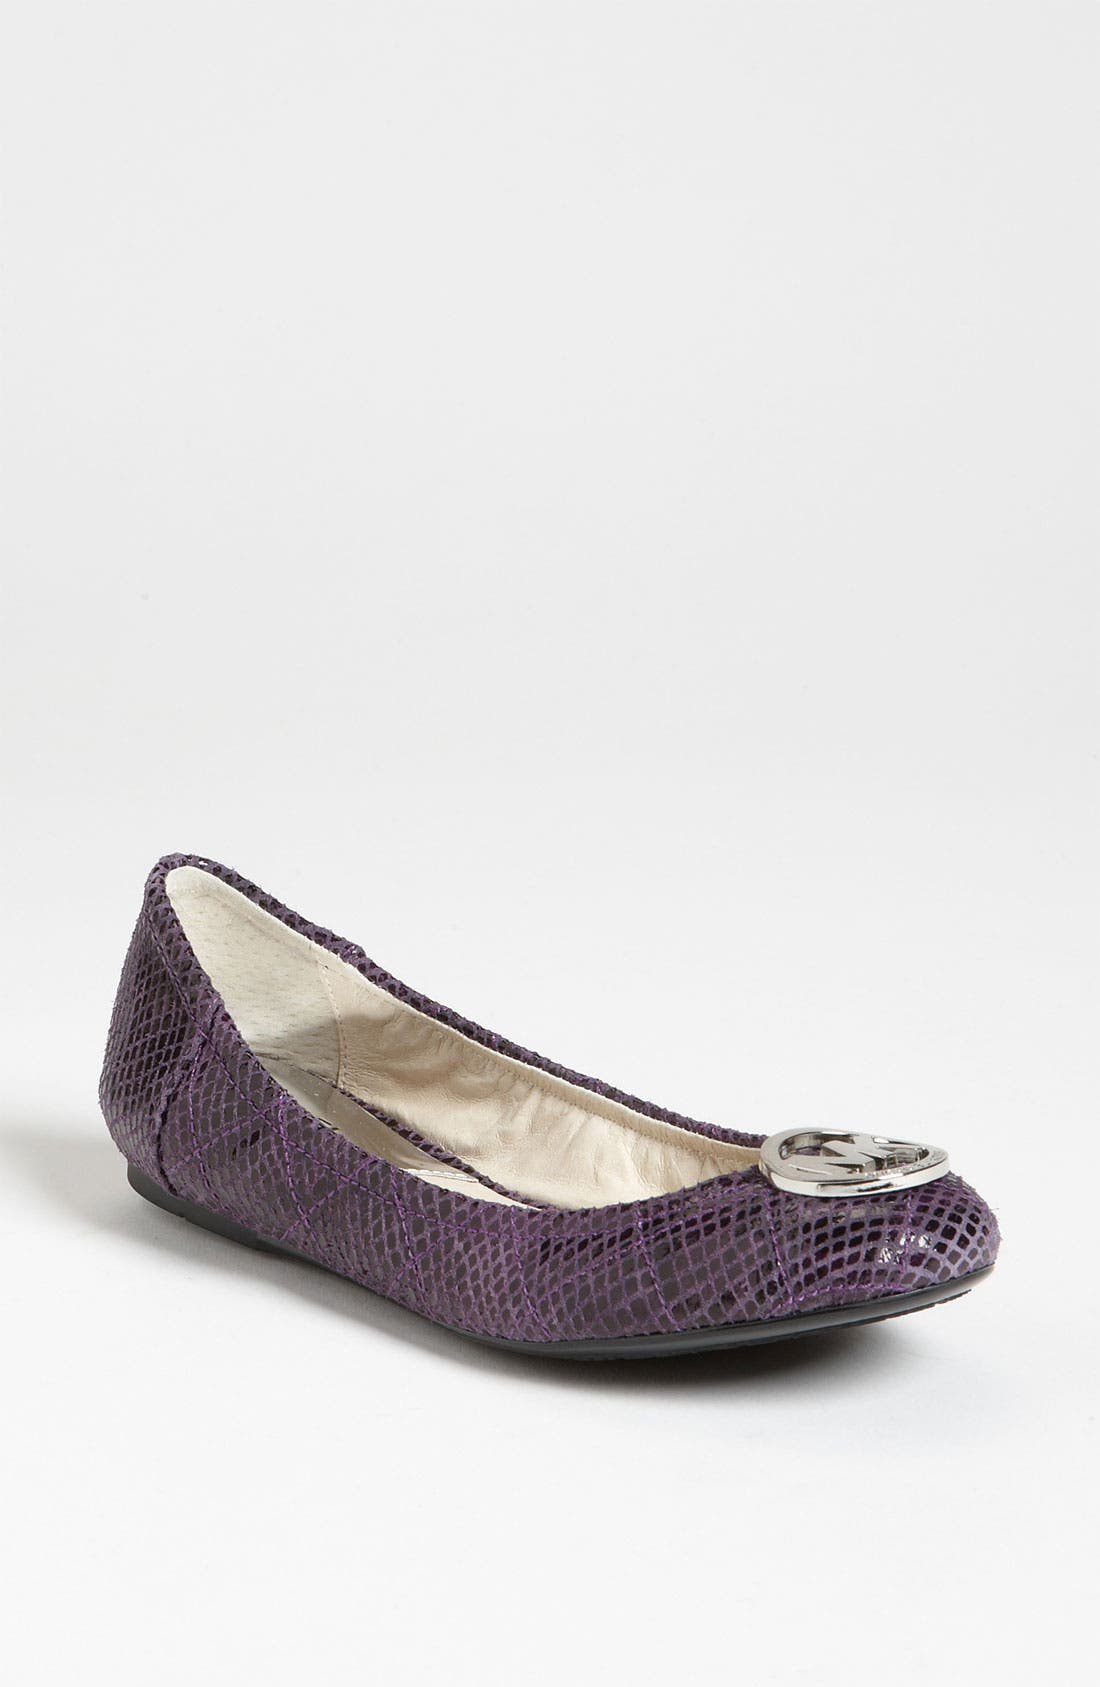 Alternate Image 1 Selected - MICHAEL Michael Kors 'Fulton' Ballet Flat